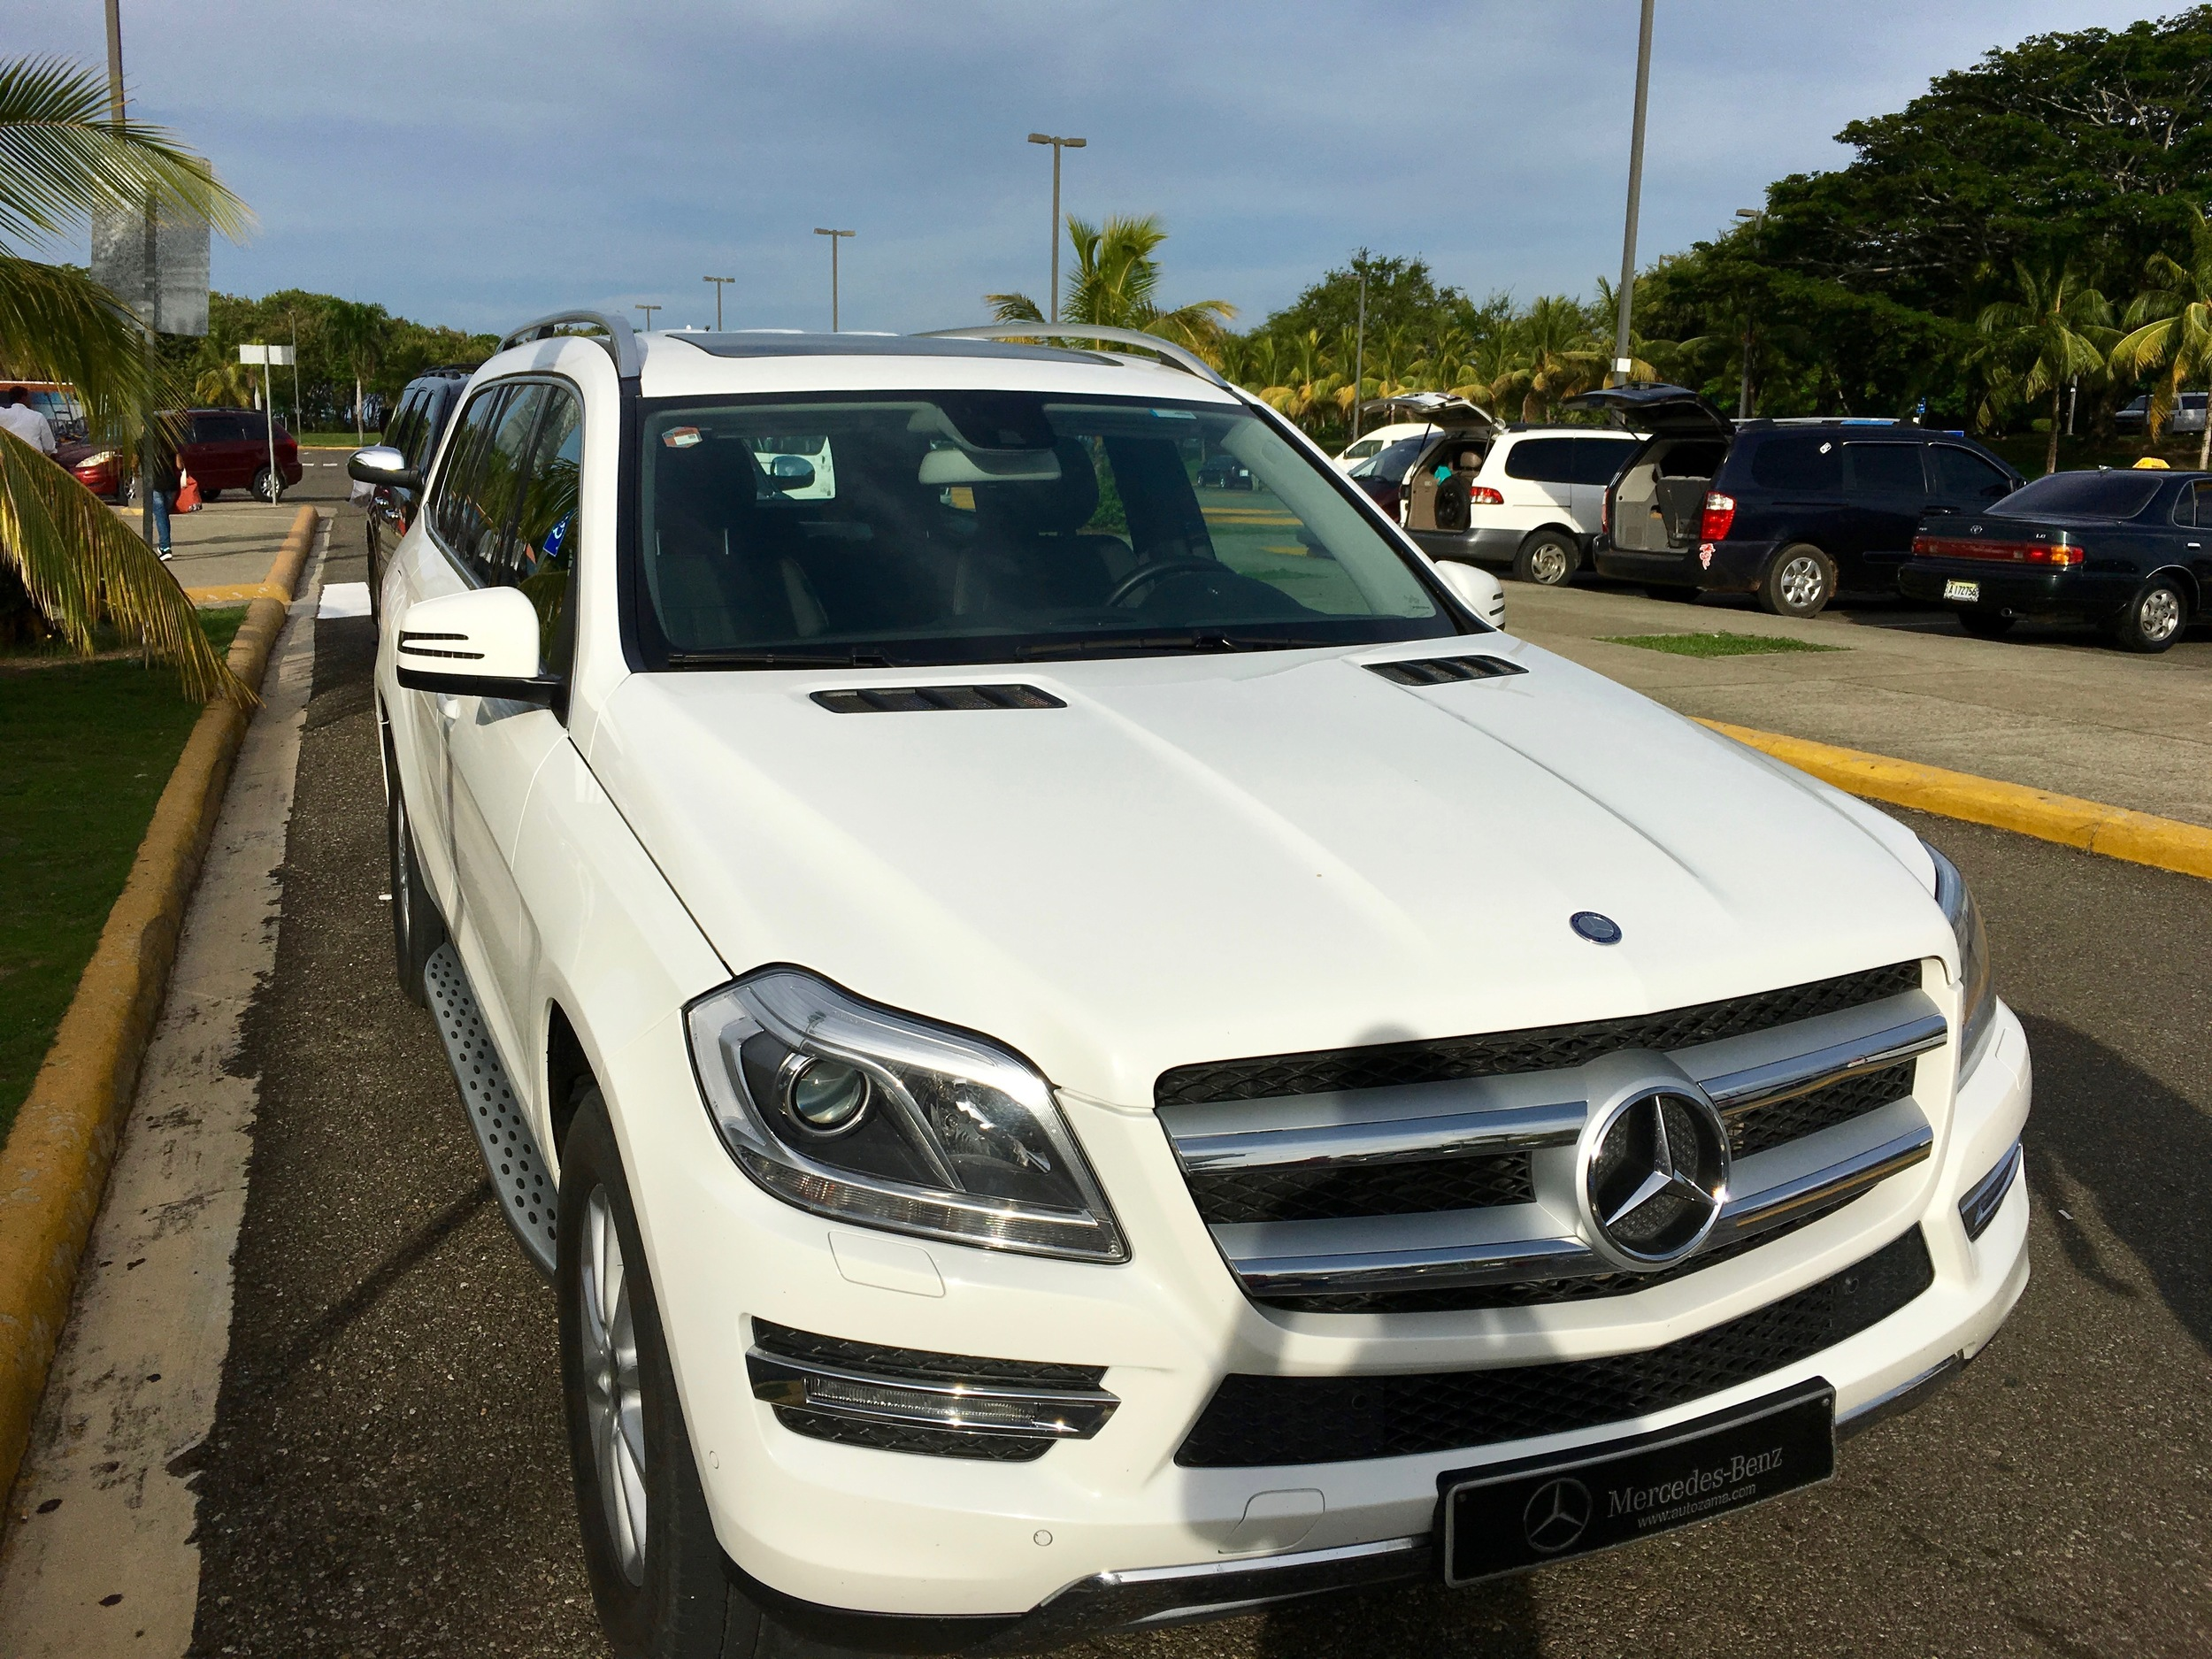 Mercedes GL is the standard transfer viehcle and included in the nightly rates